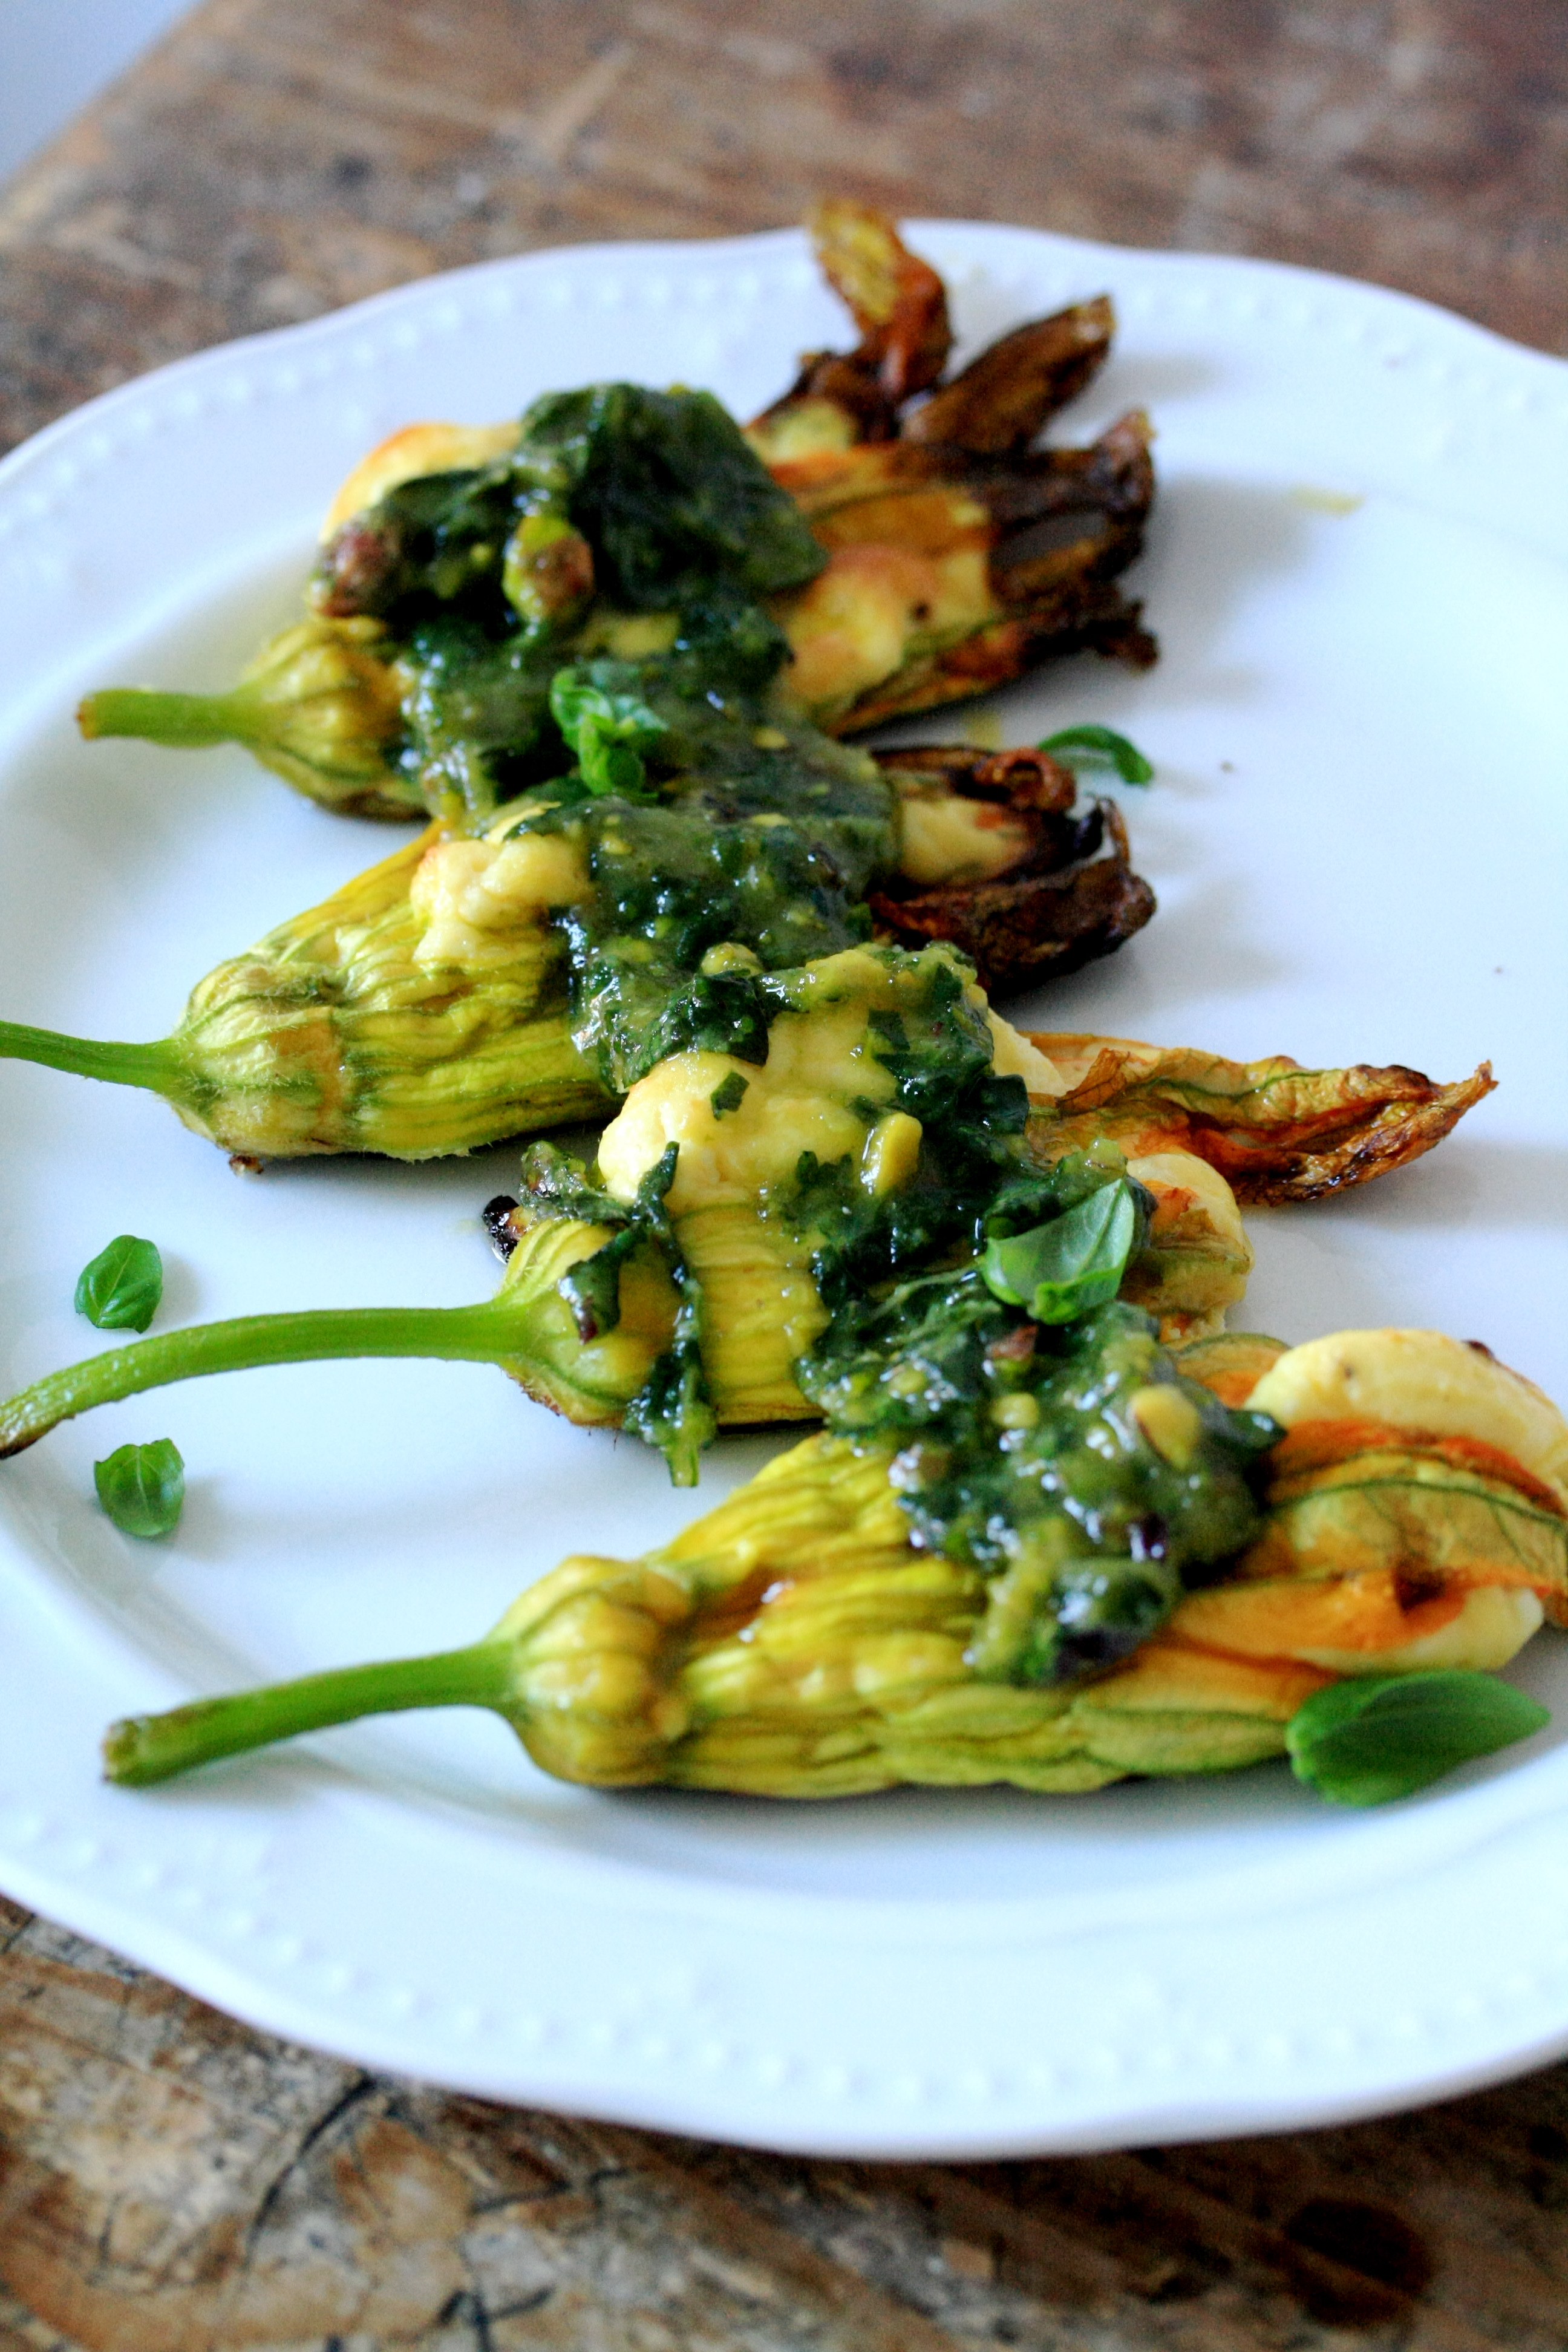 These Are Ricottastuffed Zucchini Flowers With Pesto, And I Highly  Recommend You Make Them For Your Next Lunch In Italy, Zucchini Flowers Are  Widely